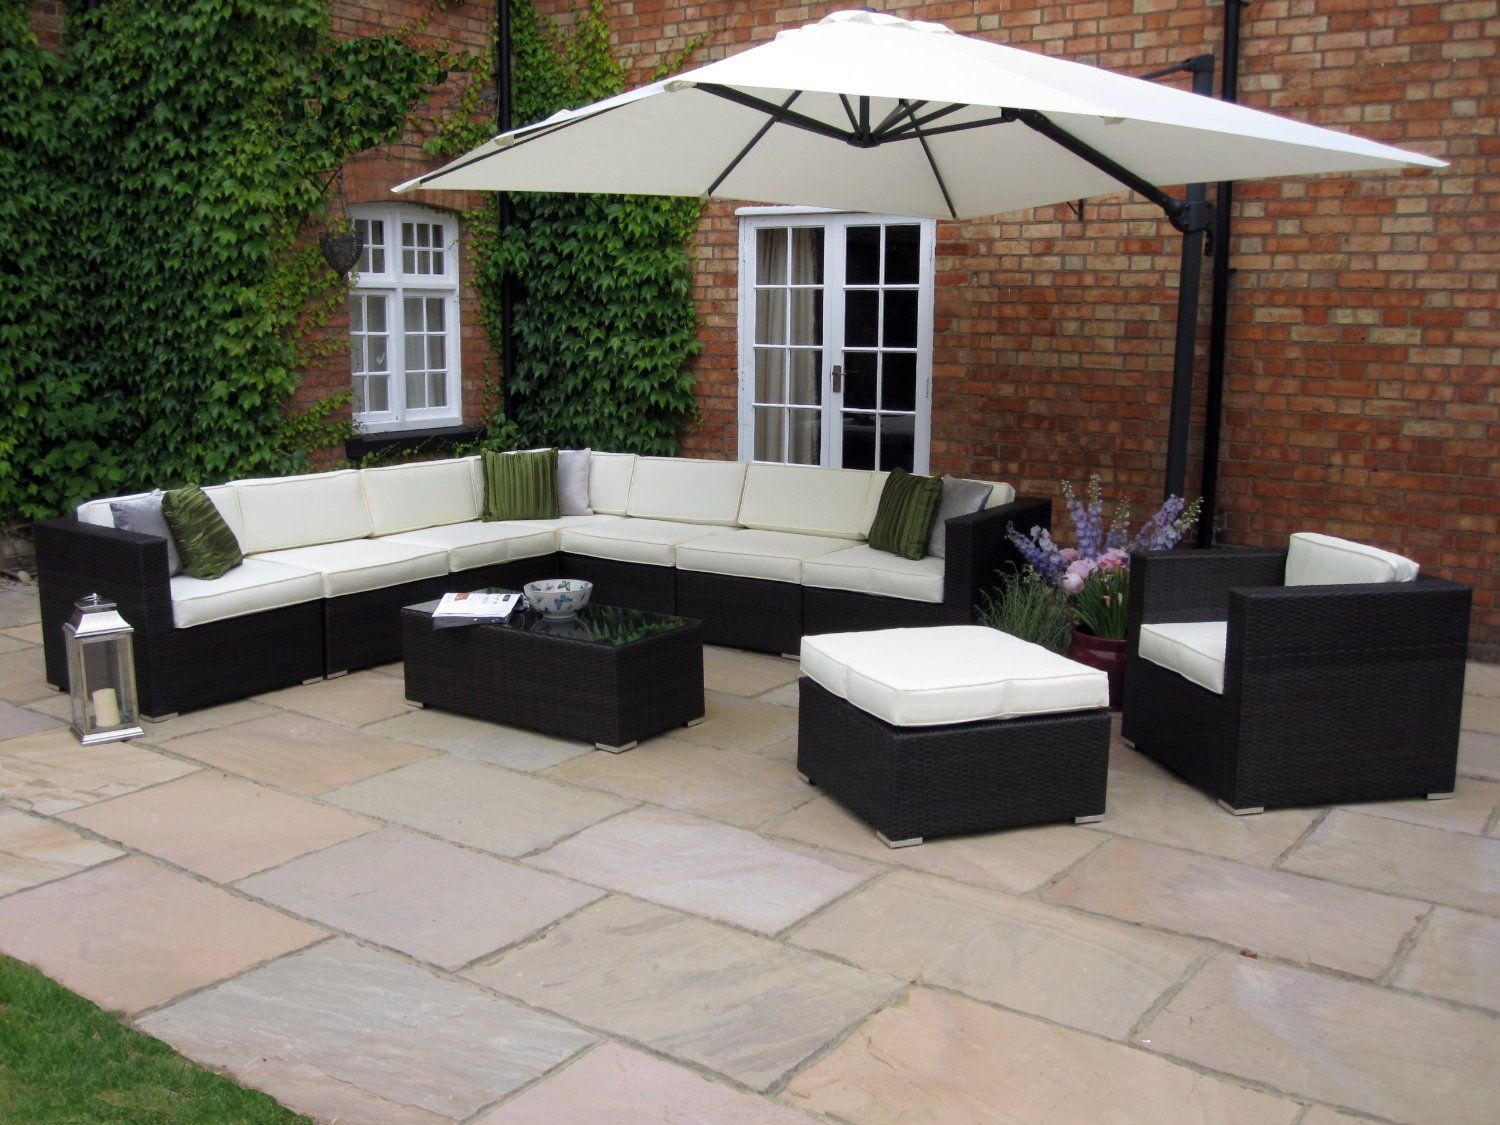 Miadomodo Salon De Jardin Oakita Rattan Garden Furniture Corner Sofa And King Parasol